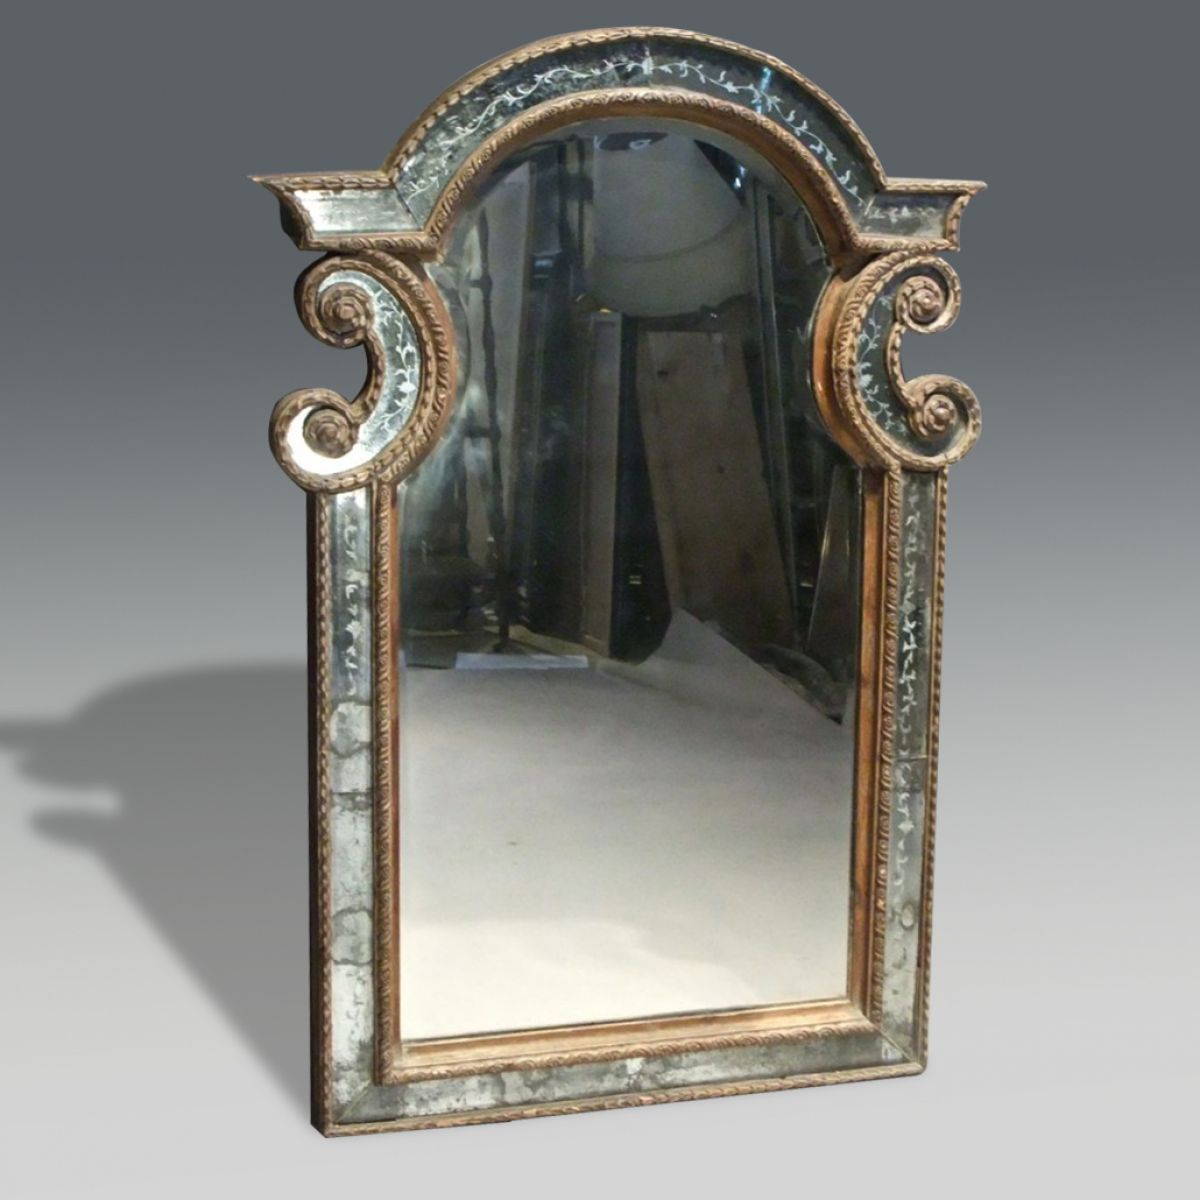 Baroque mirror stock christopher jones antiques for Baroque mirror